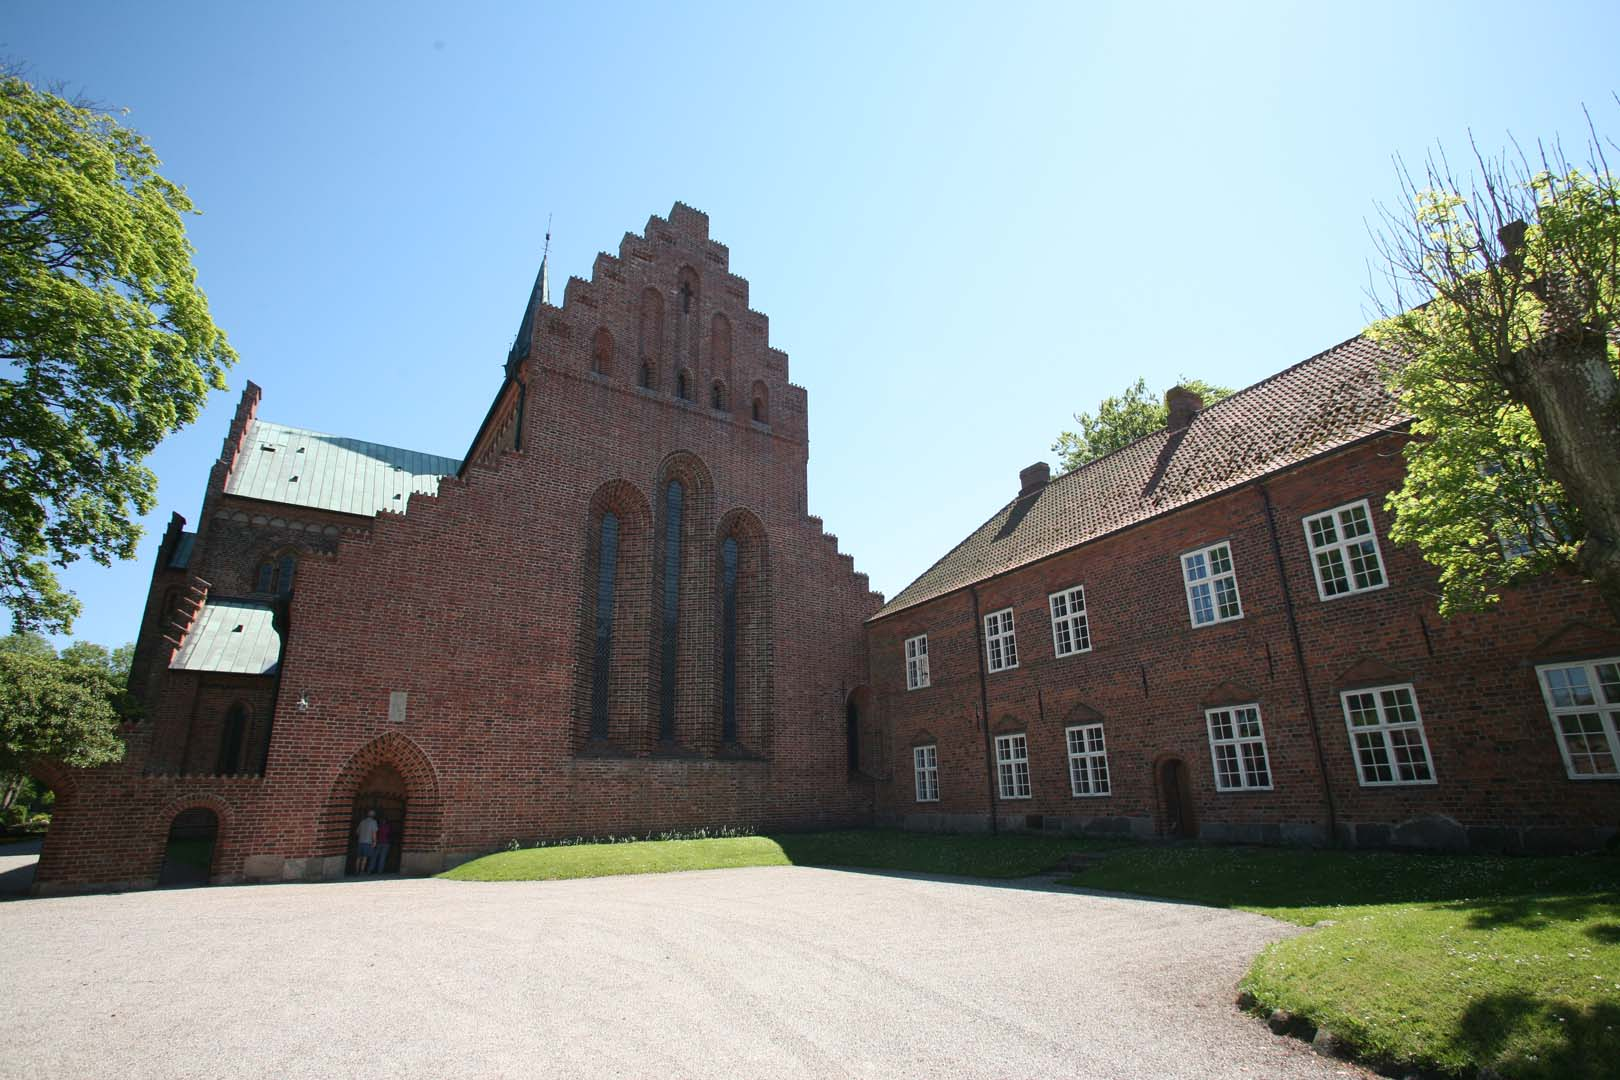 Løgum Monastery Church